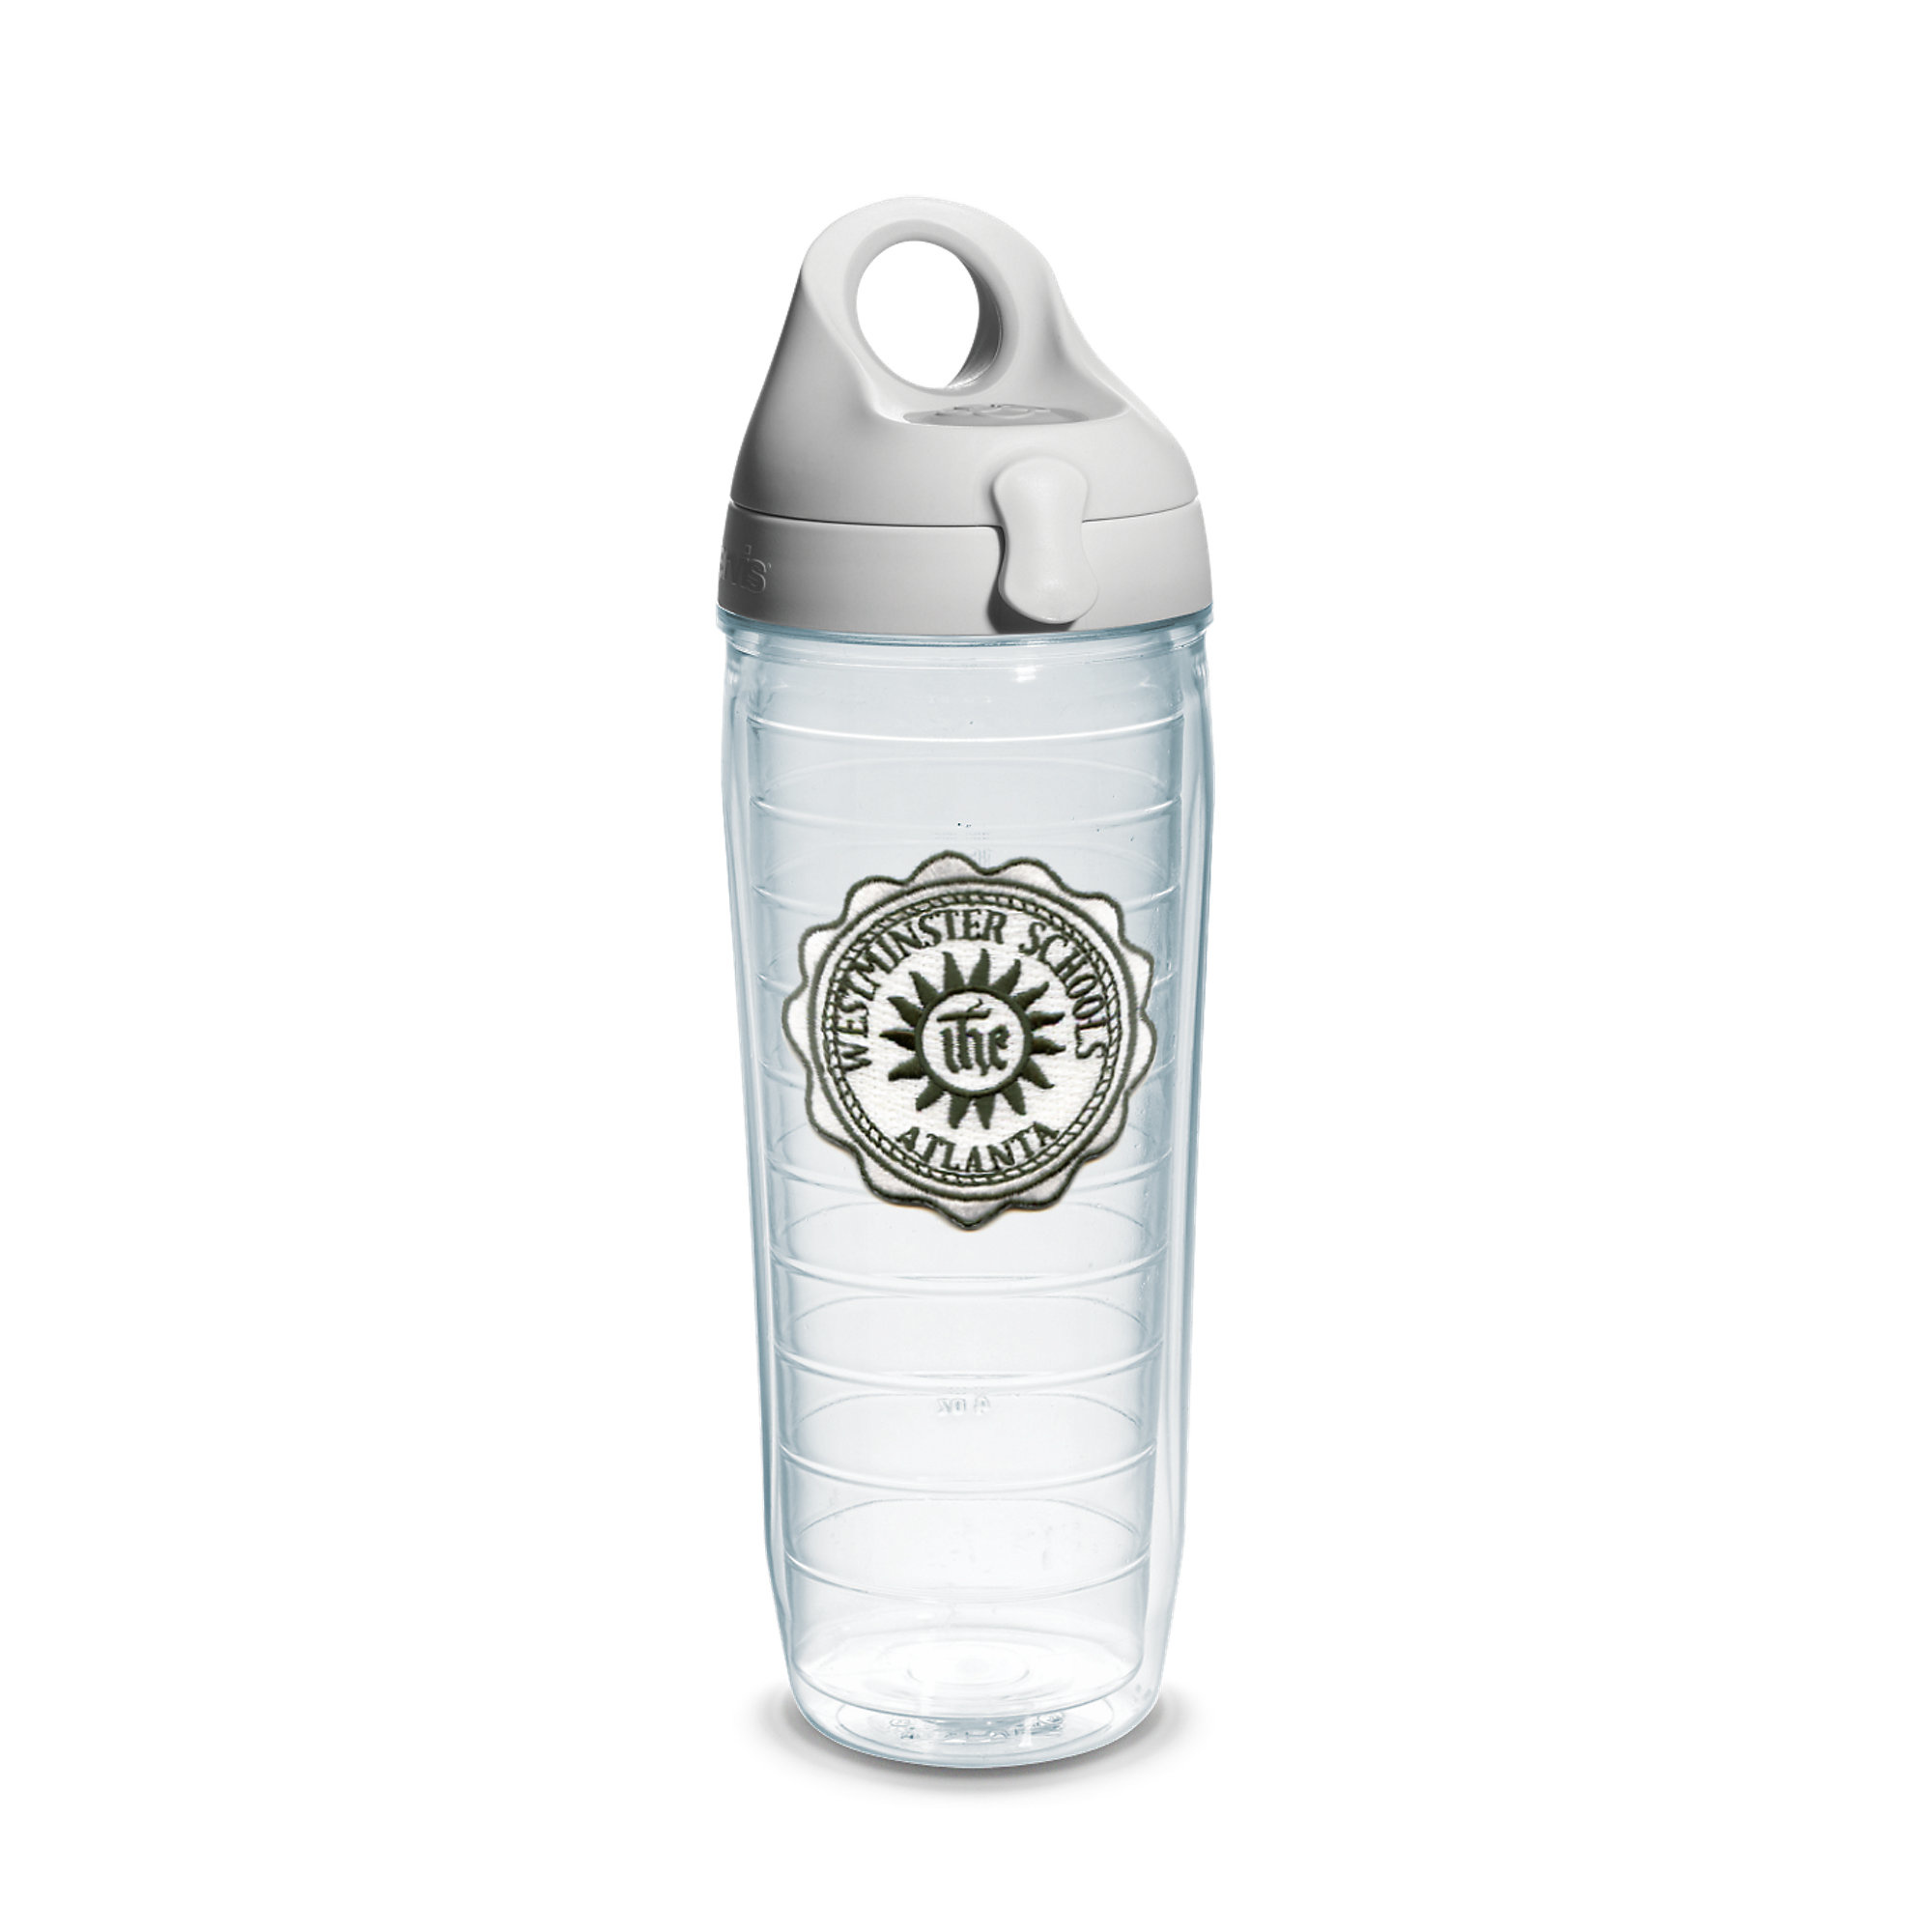 Tervis Tervis: Water Bottle with Seal